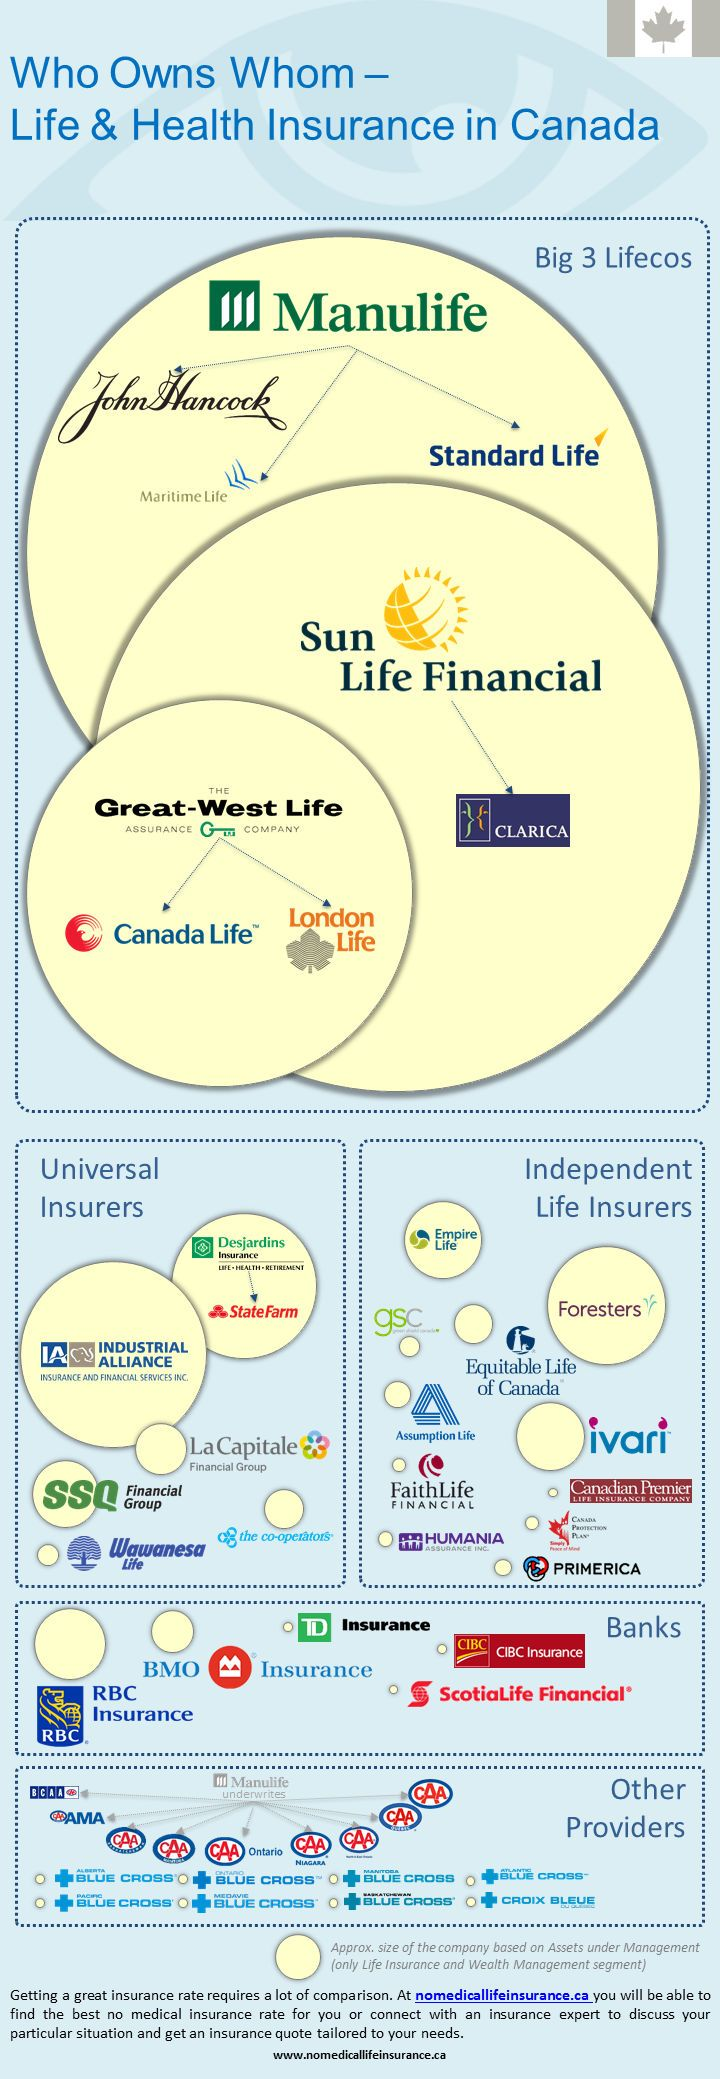 Who Owns Whom On A Canadian Life Insurance Market Life Insurance Companies Life Insurance Calculator Life And Health Insurance